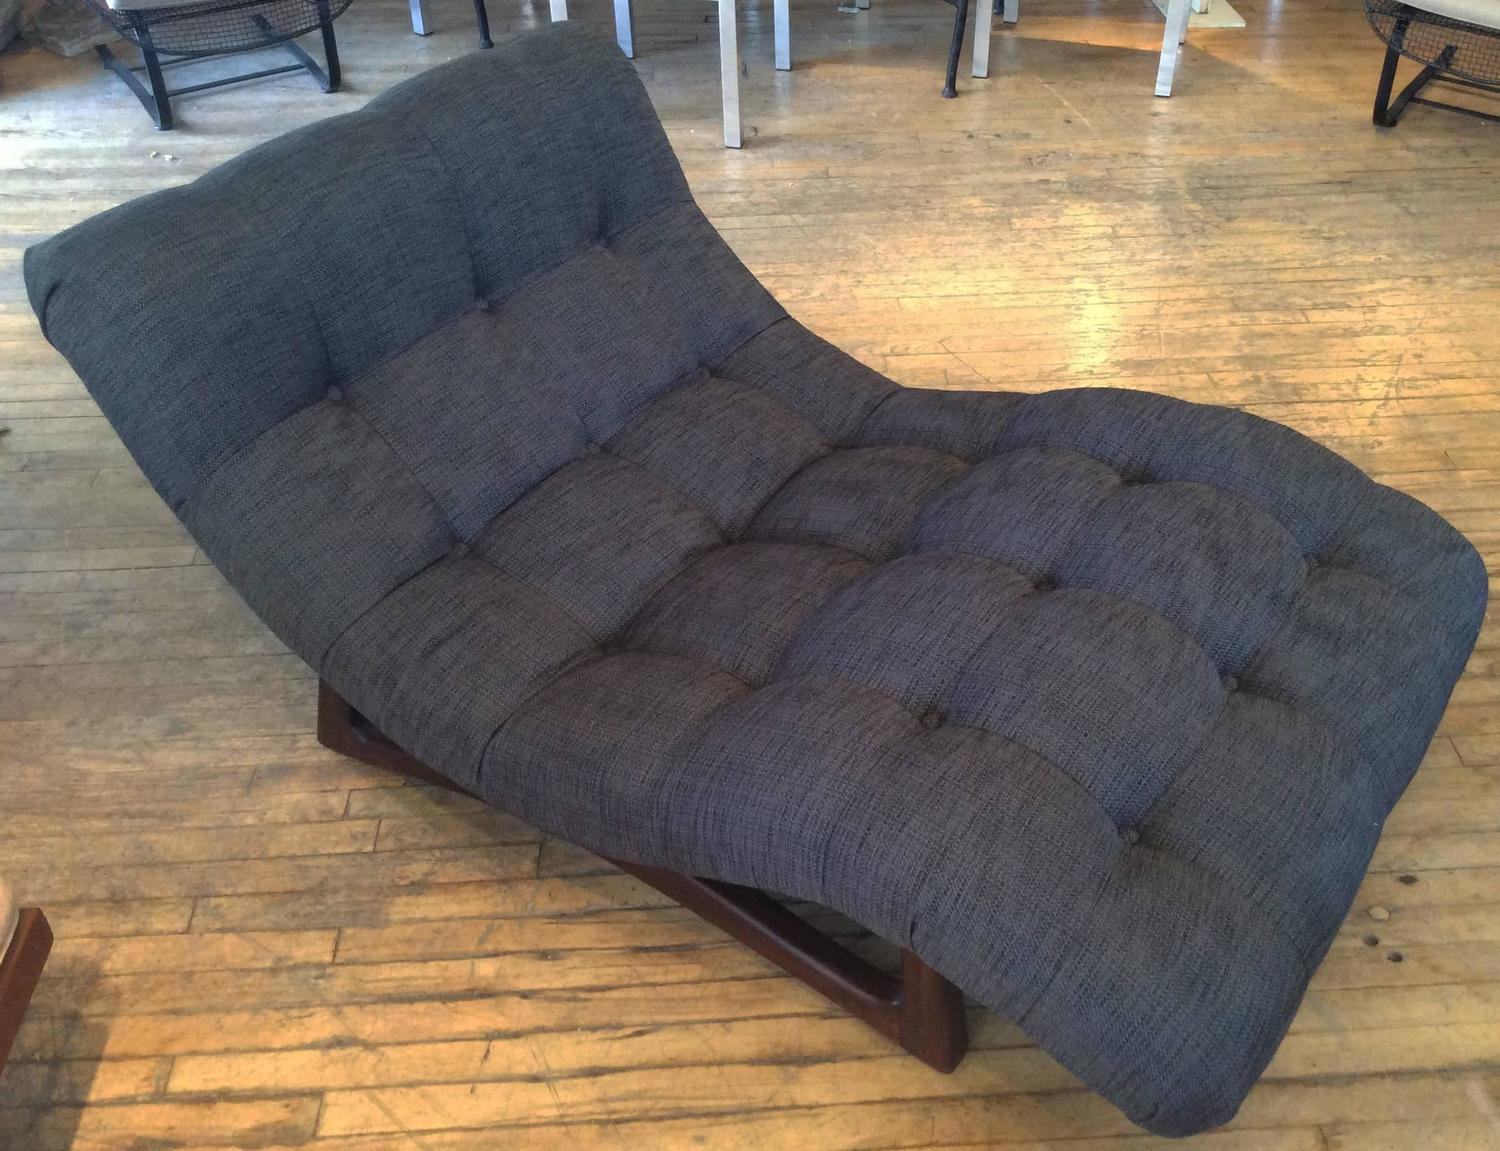 Vintage Adrian Pearsall Curved Chaise Lounge with Walnut Base at 1stdibs